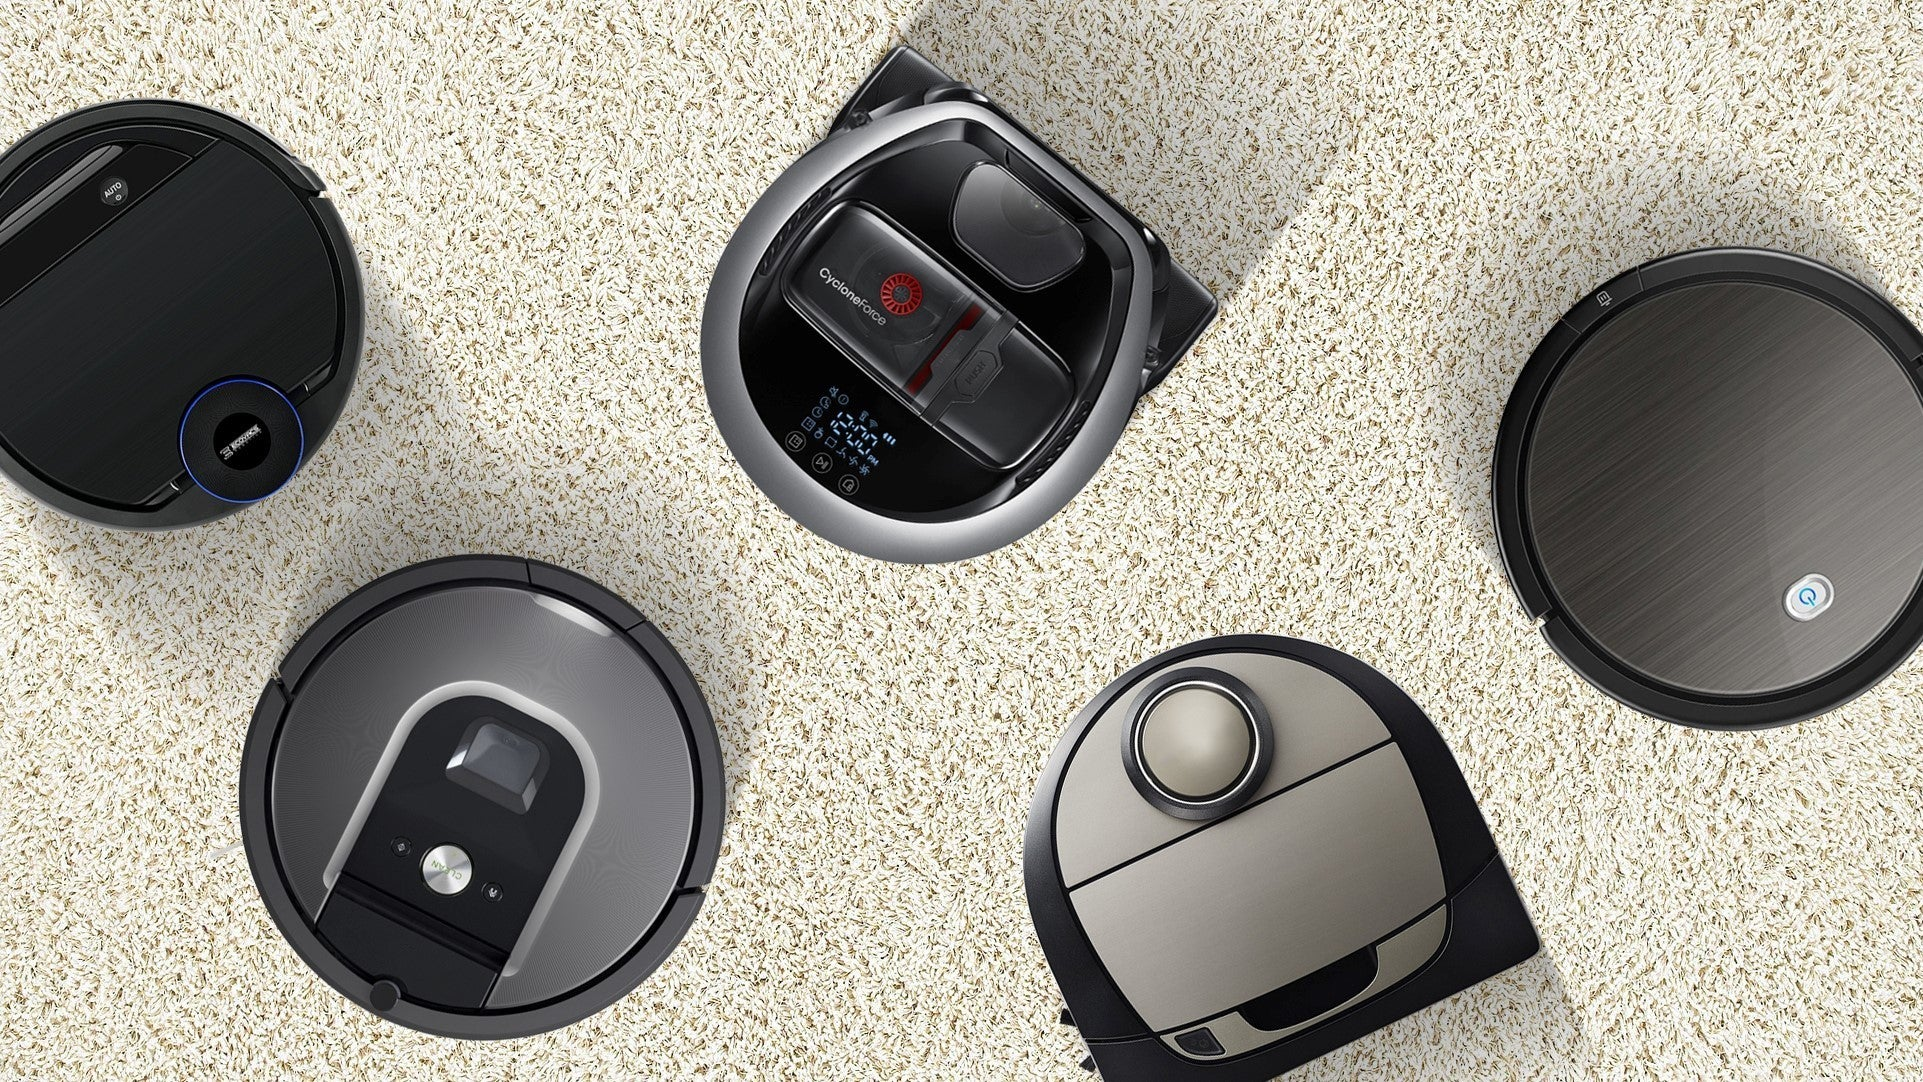 Best robot vacuums 2019: Reviews and buying advice | TechHive